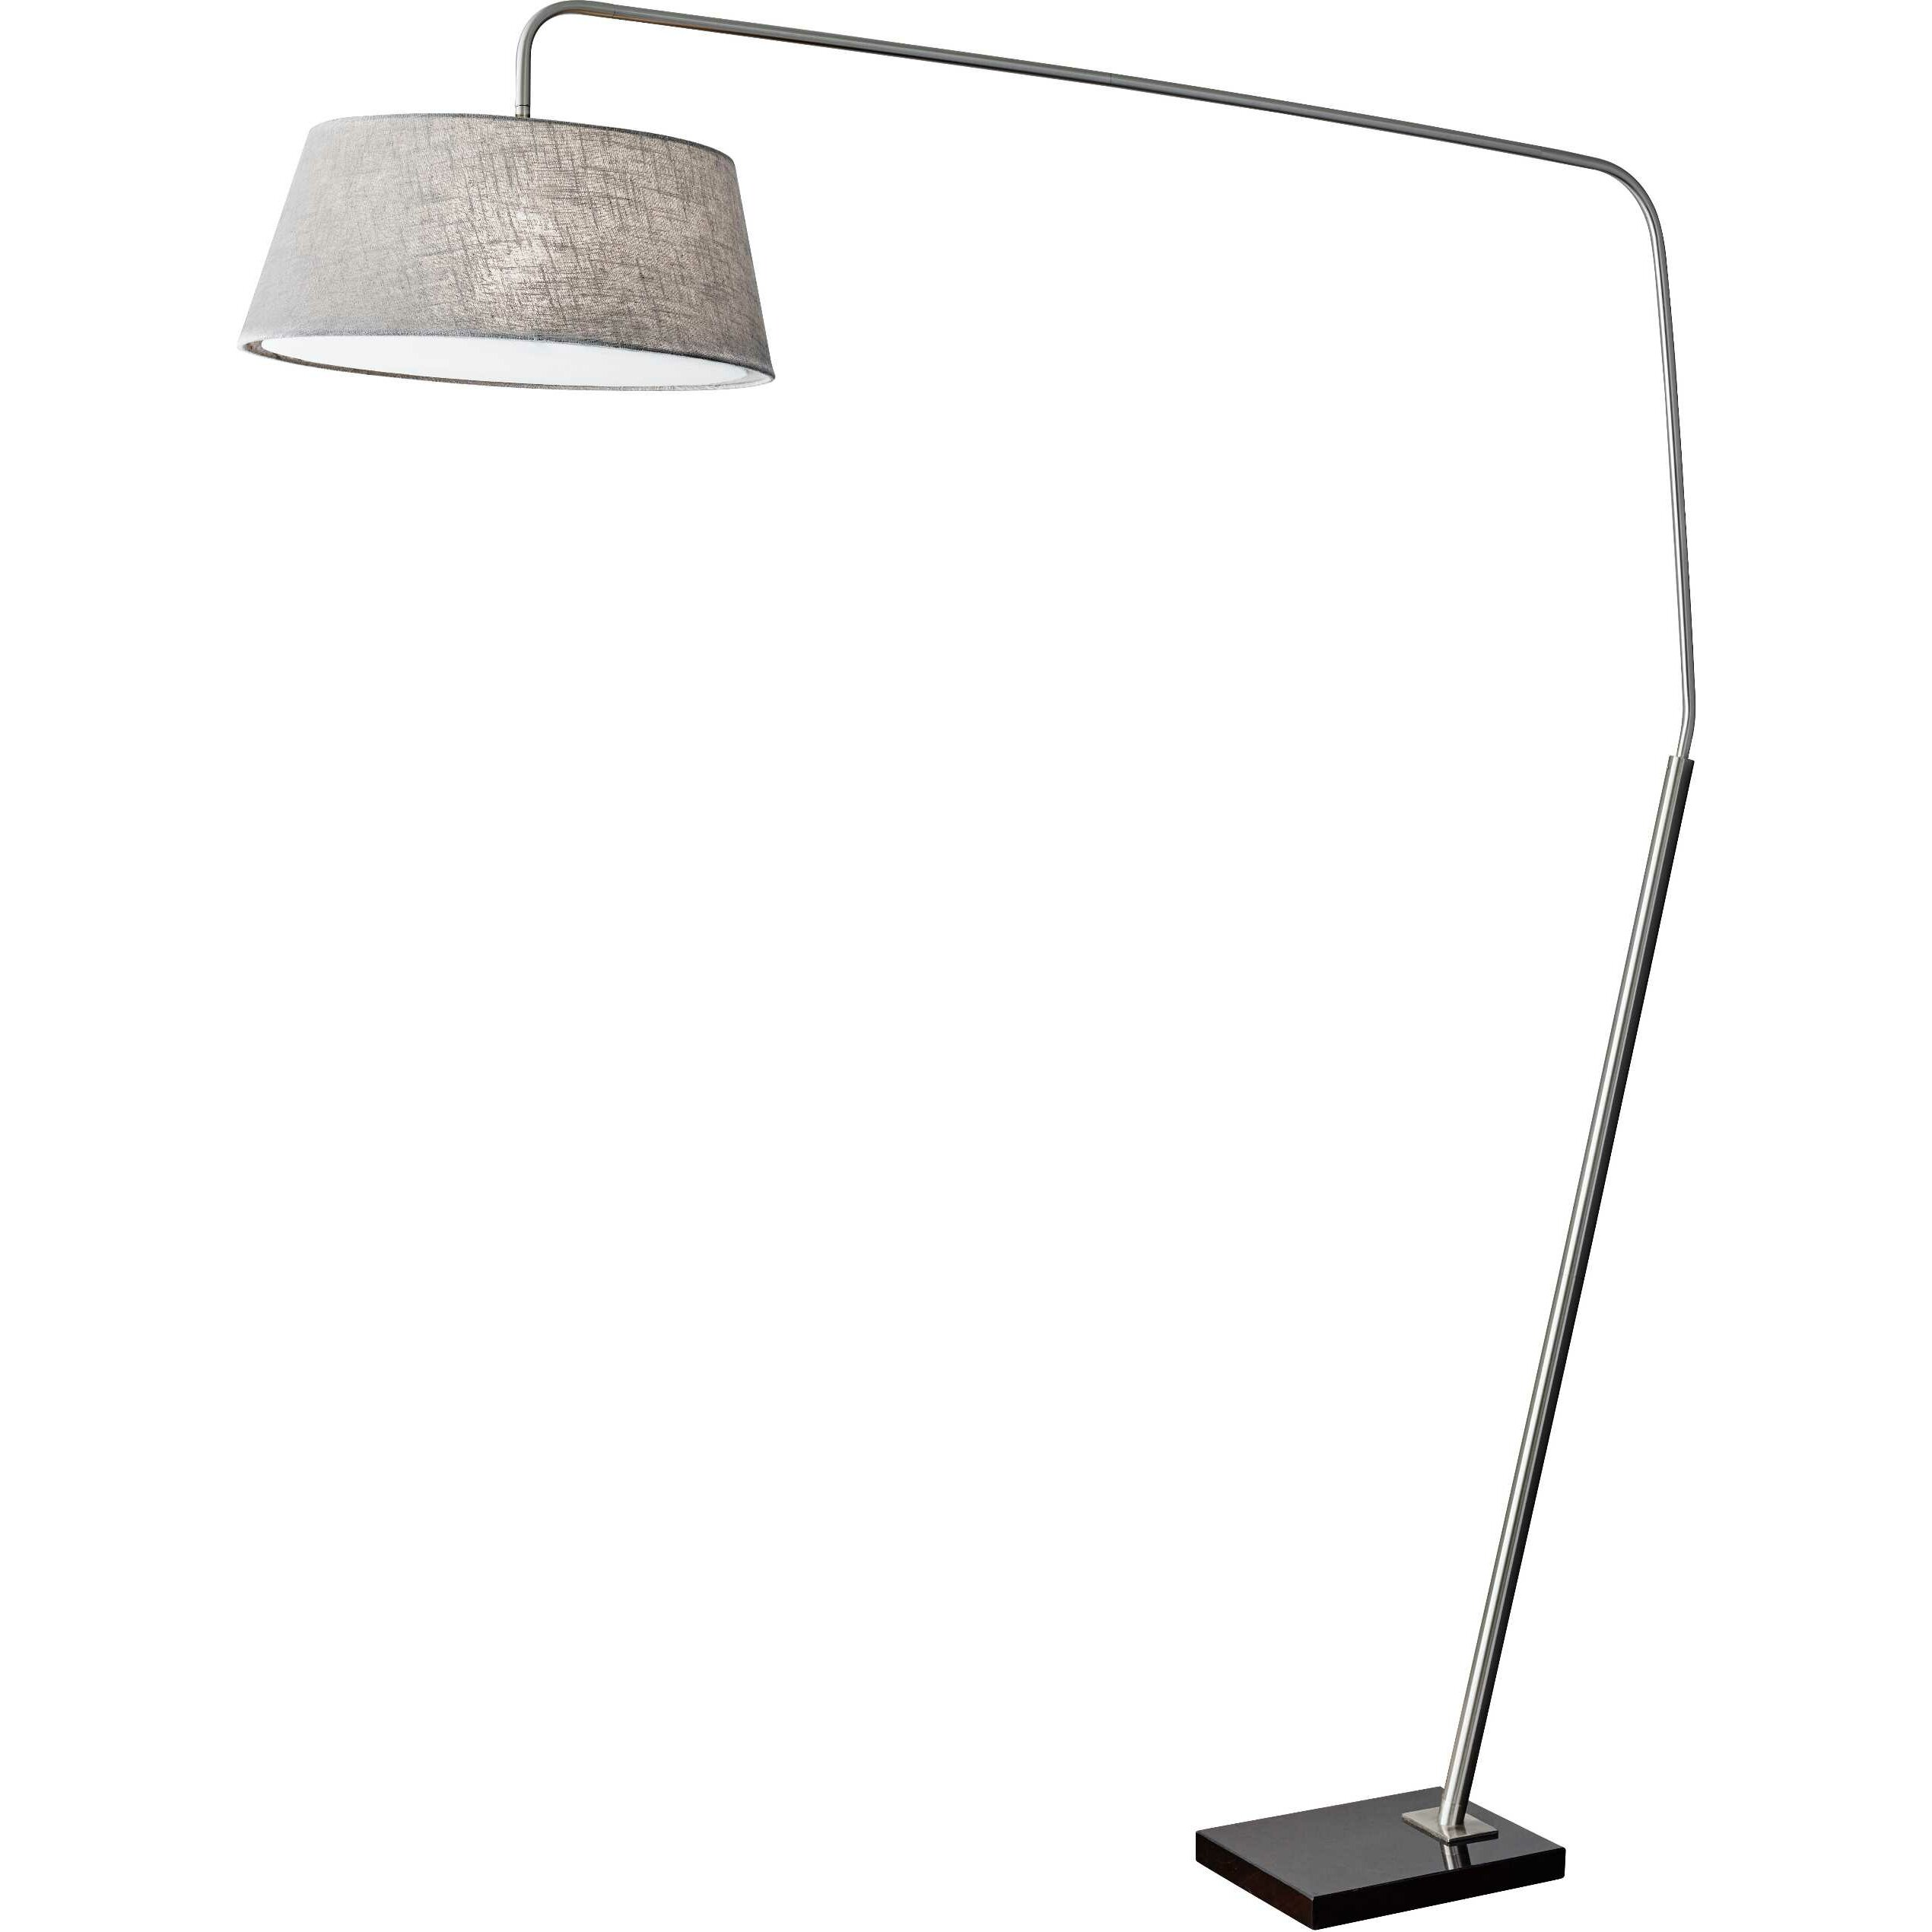 Adesso Ludlow Louisa 85 Quot Arched Floor Lamp Amp Reviews Wayfair